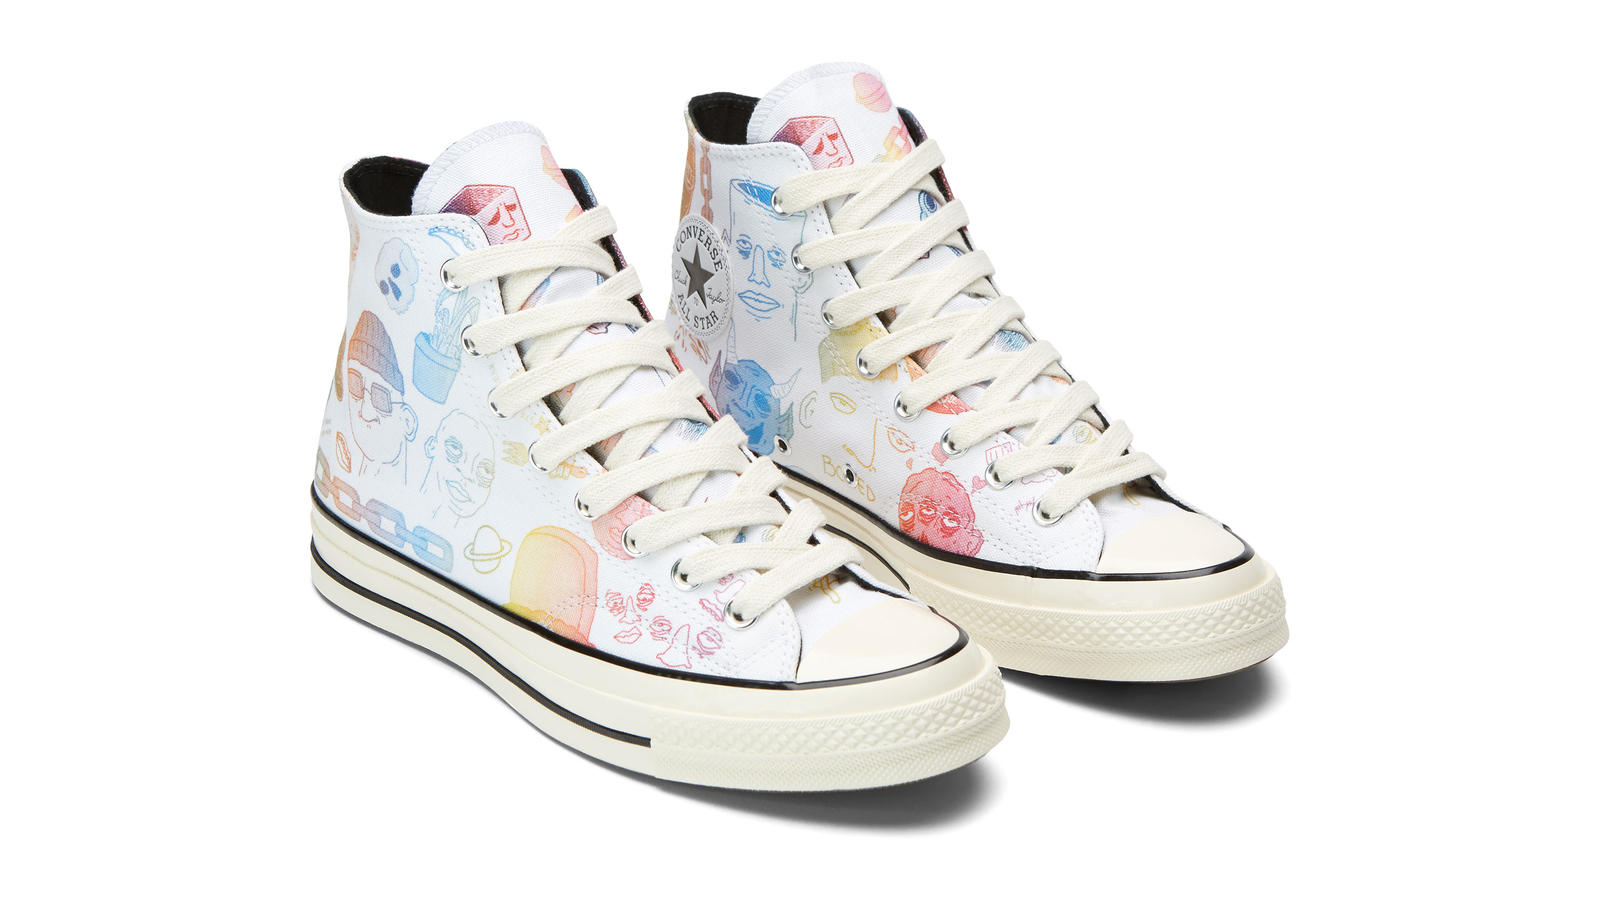 Converse 22383 Fl Artist Series Pdp Images 022